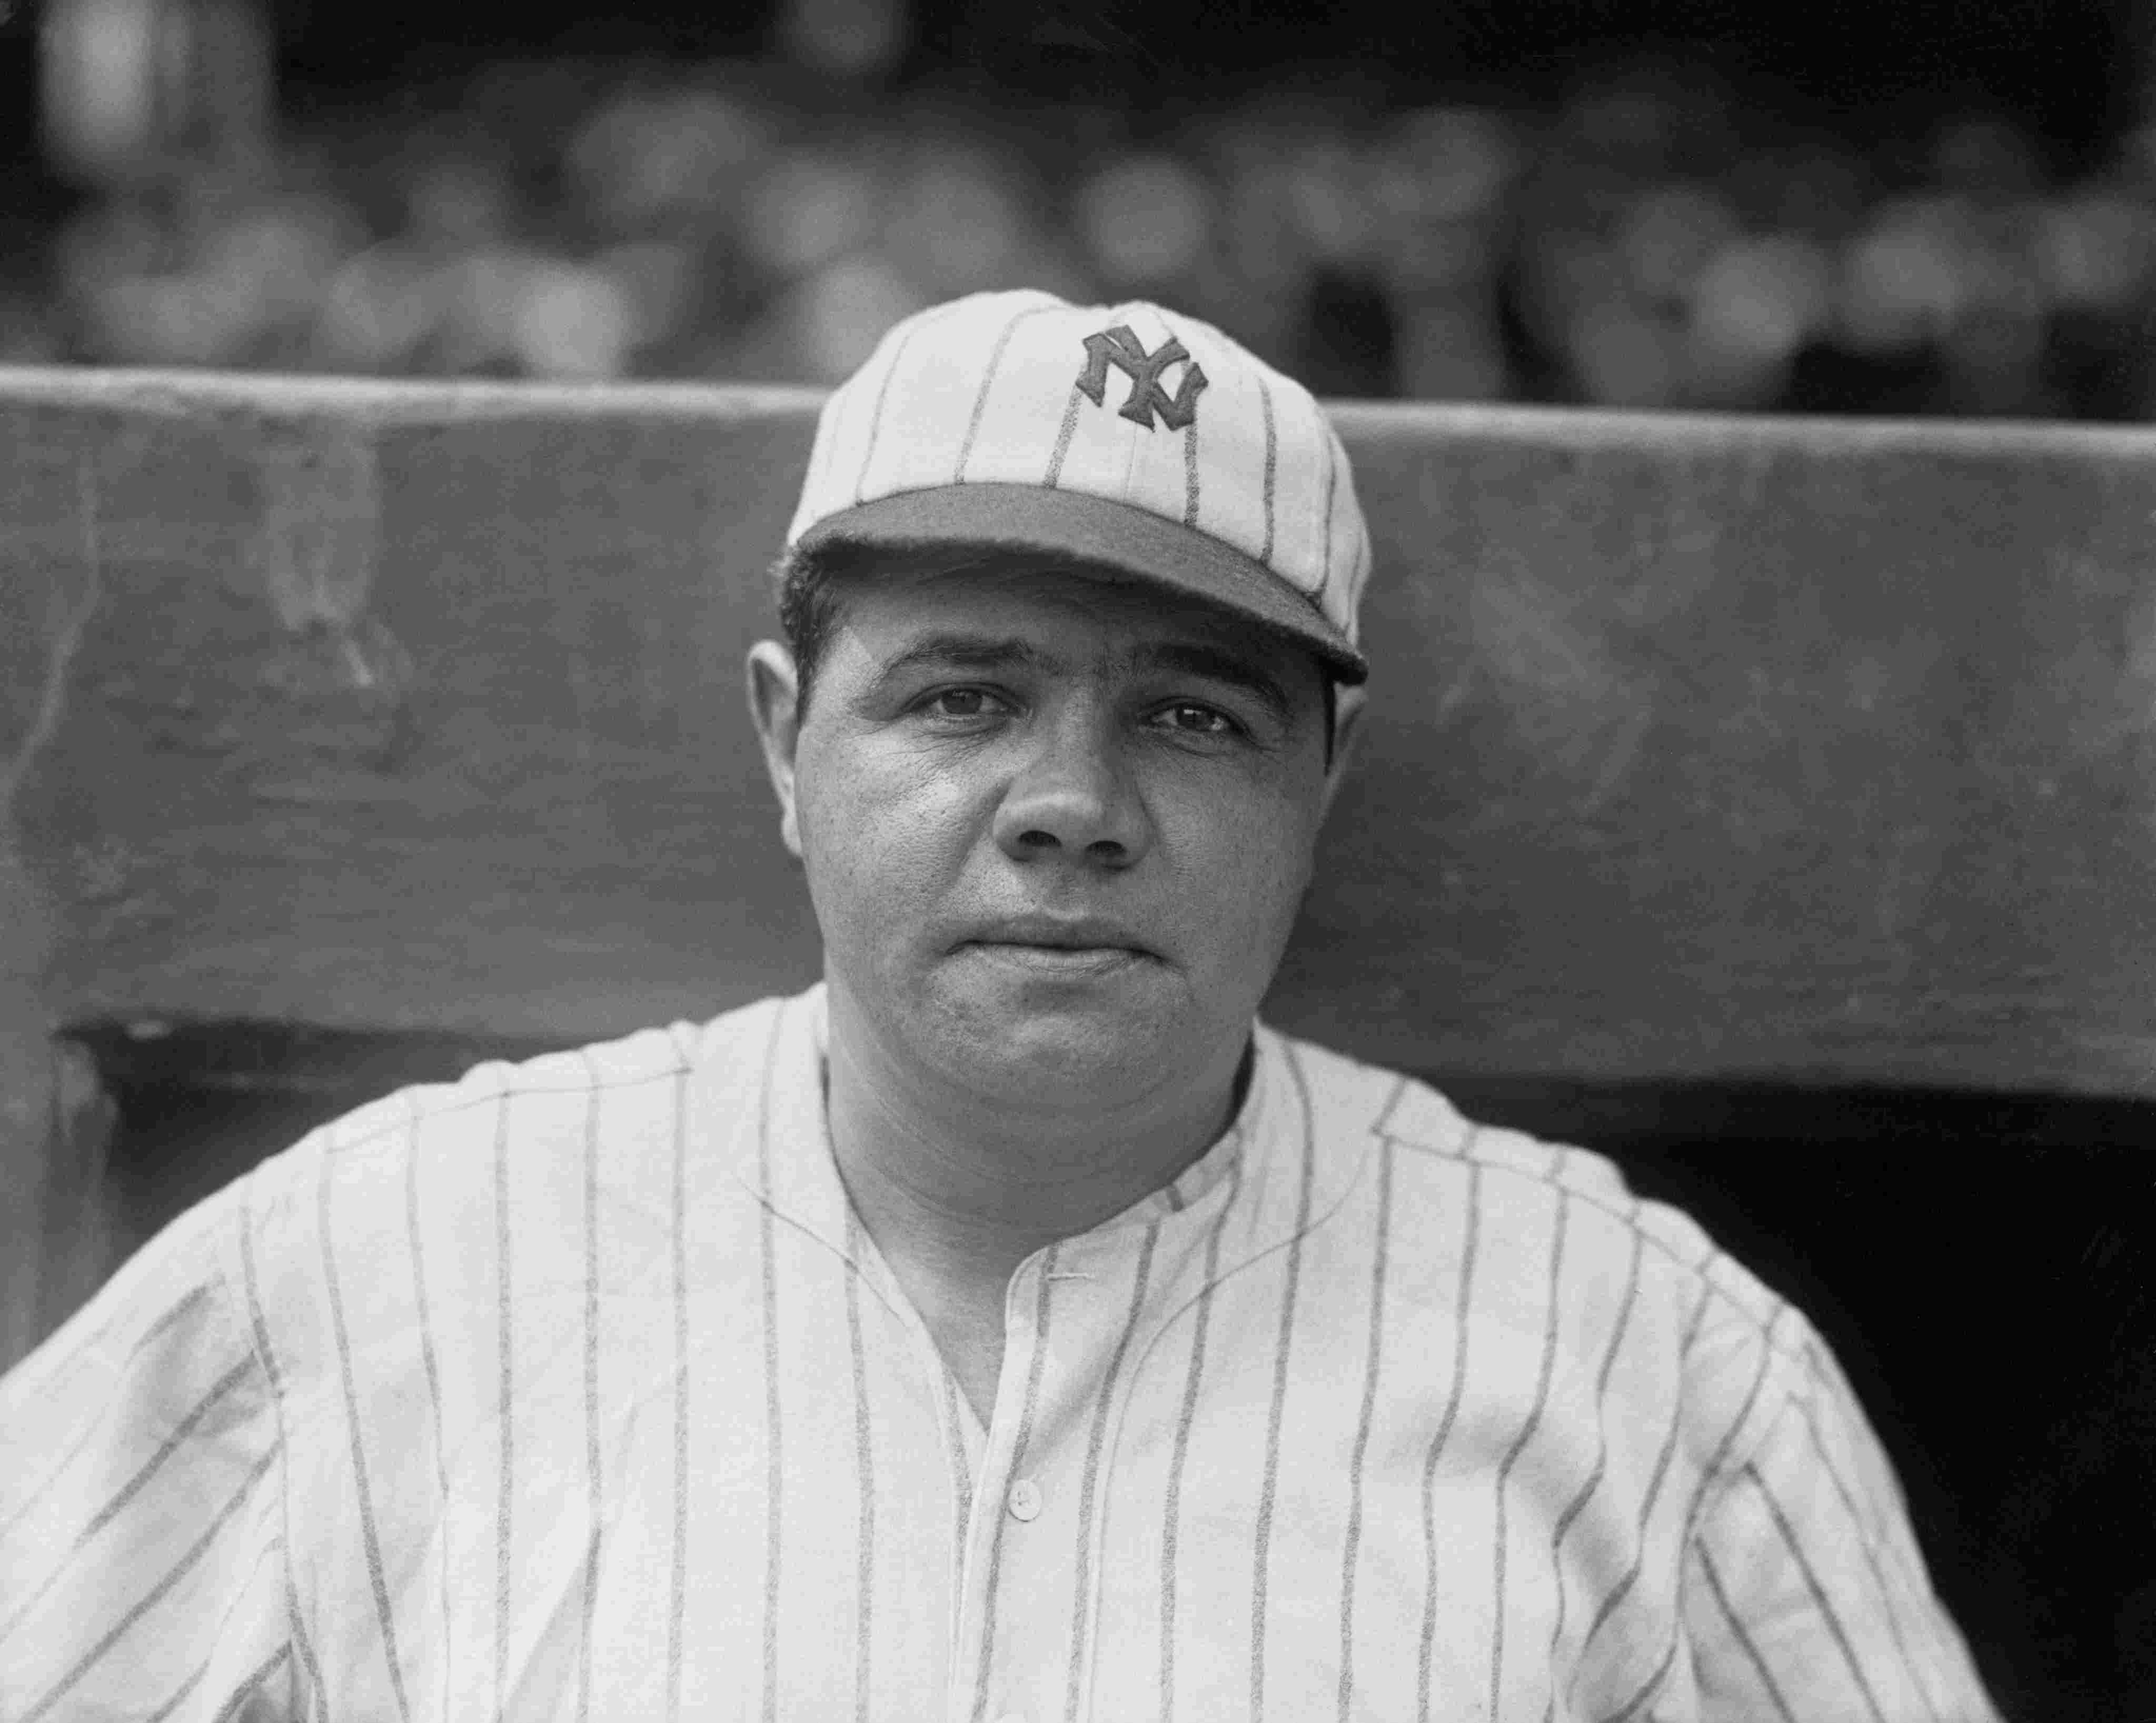 Portrait of Babe Ruth